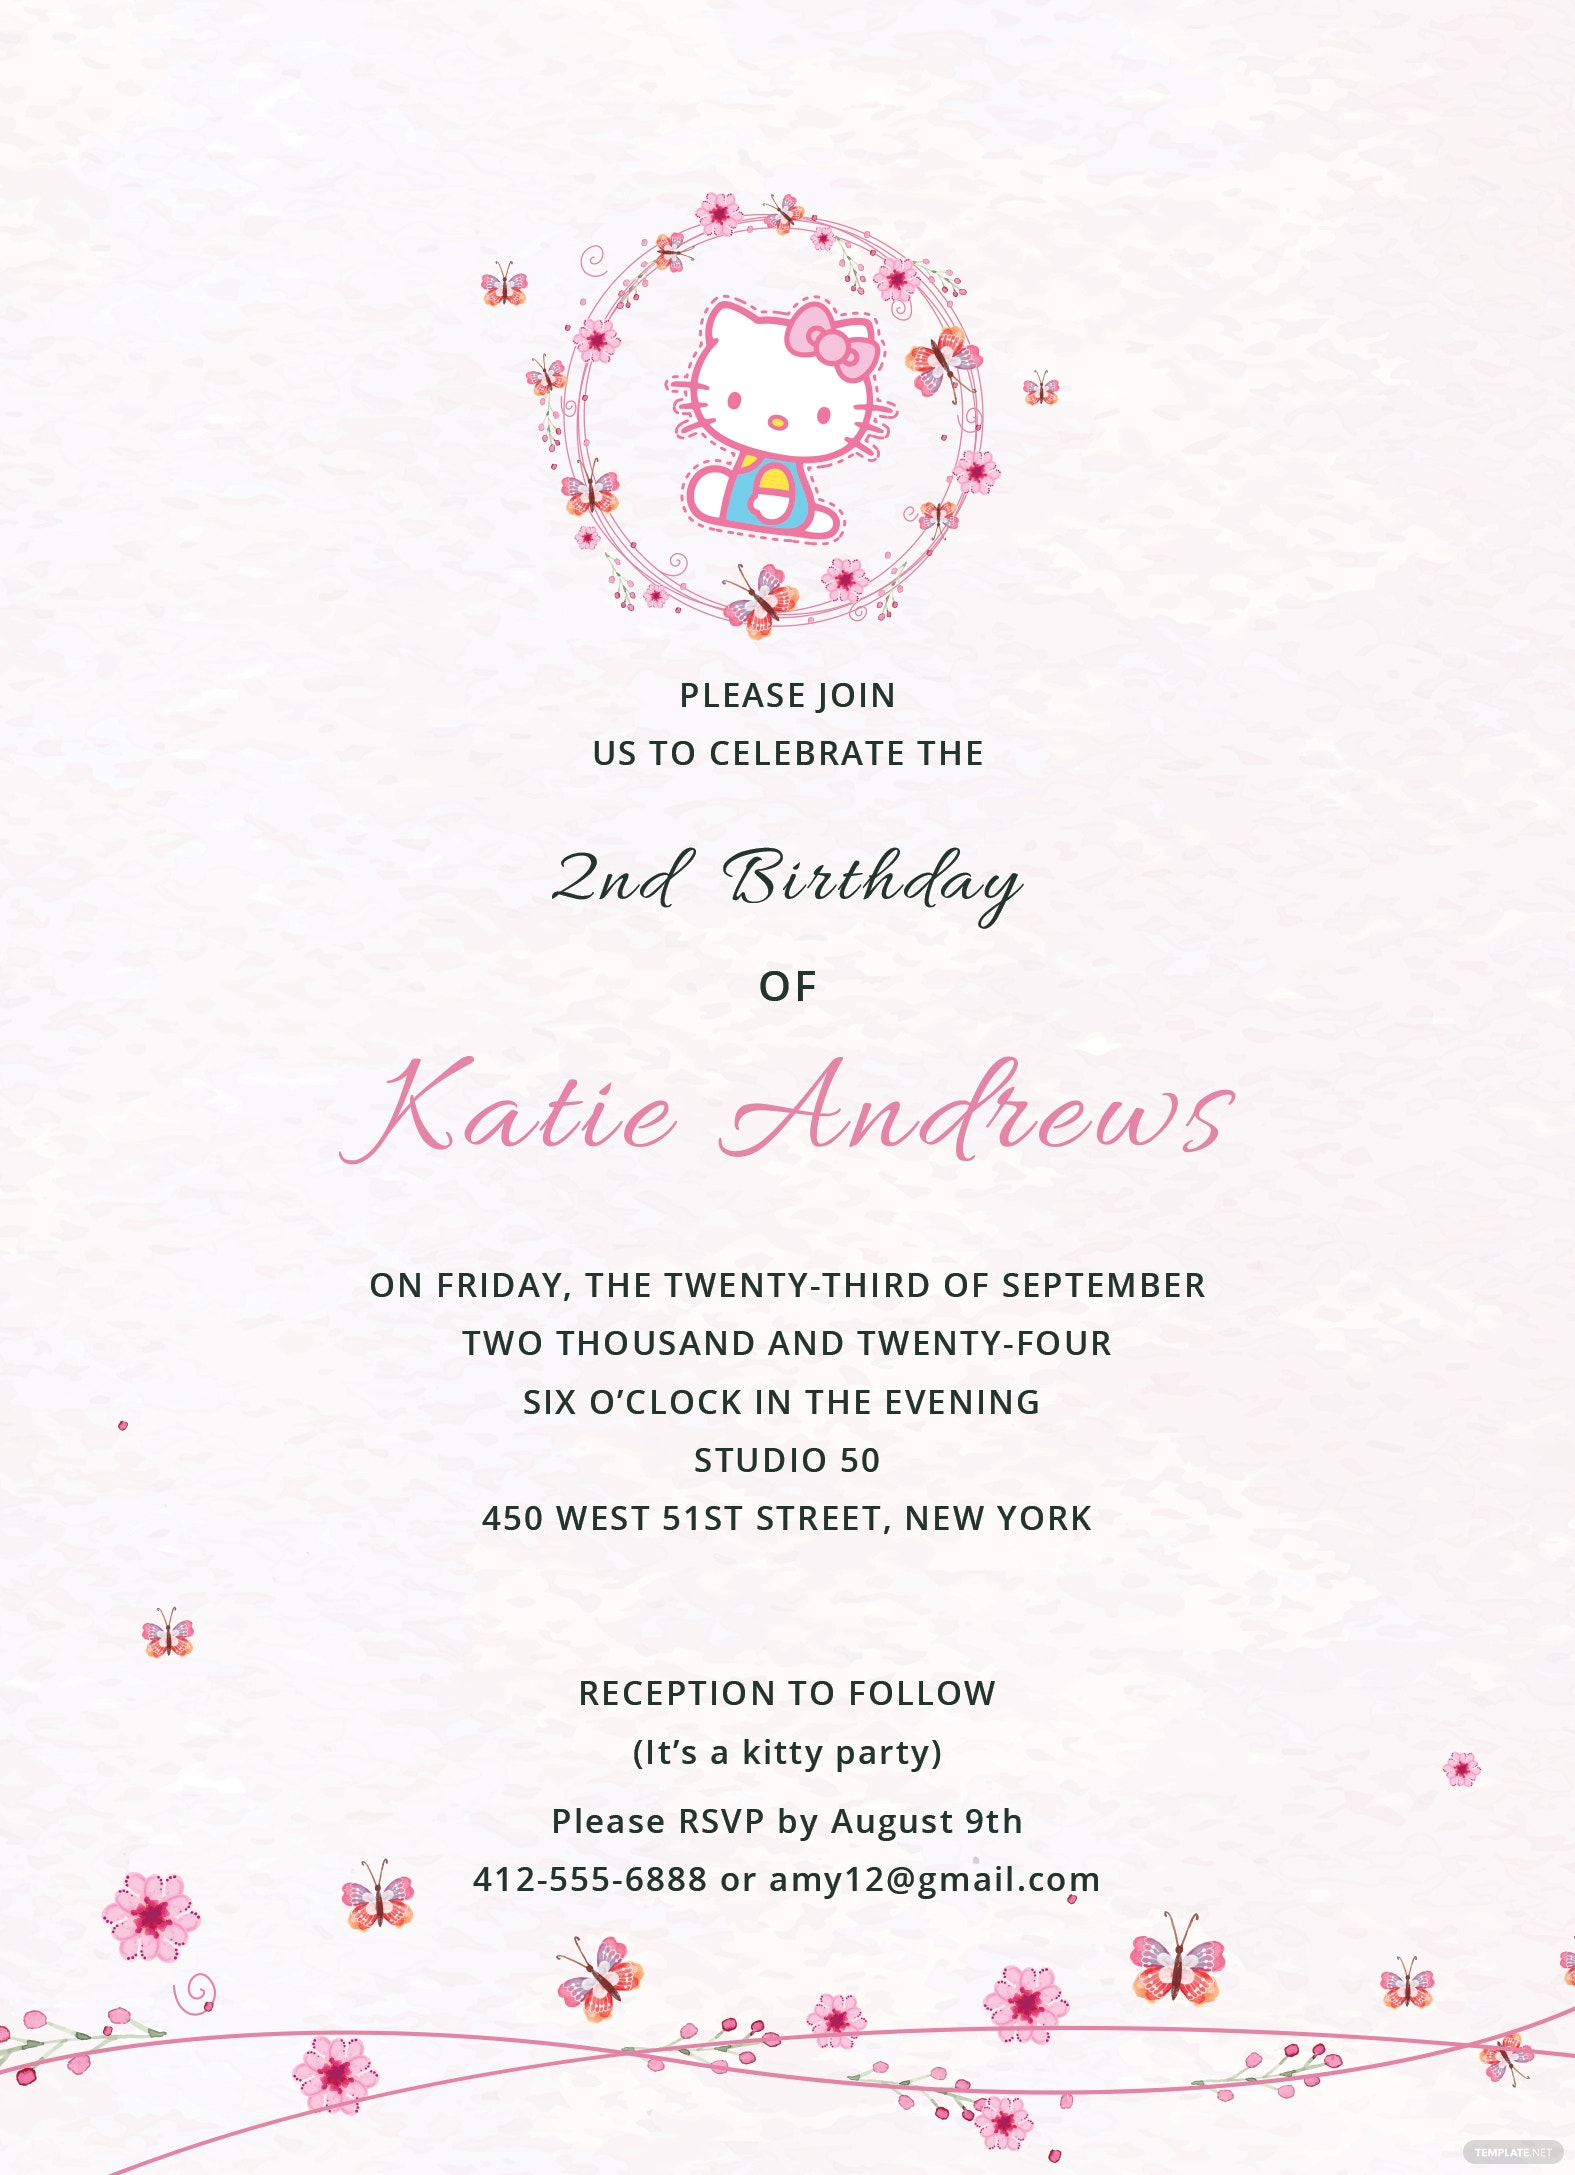 Hello Kitty Party Invitation Template in Adobe Photoshop